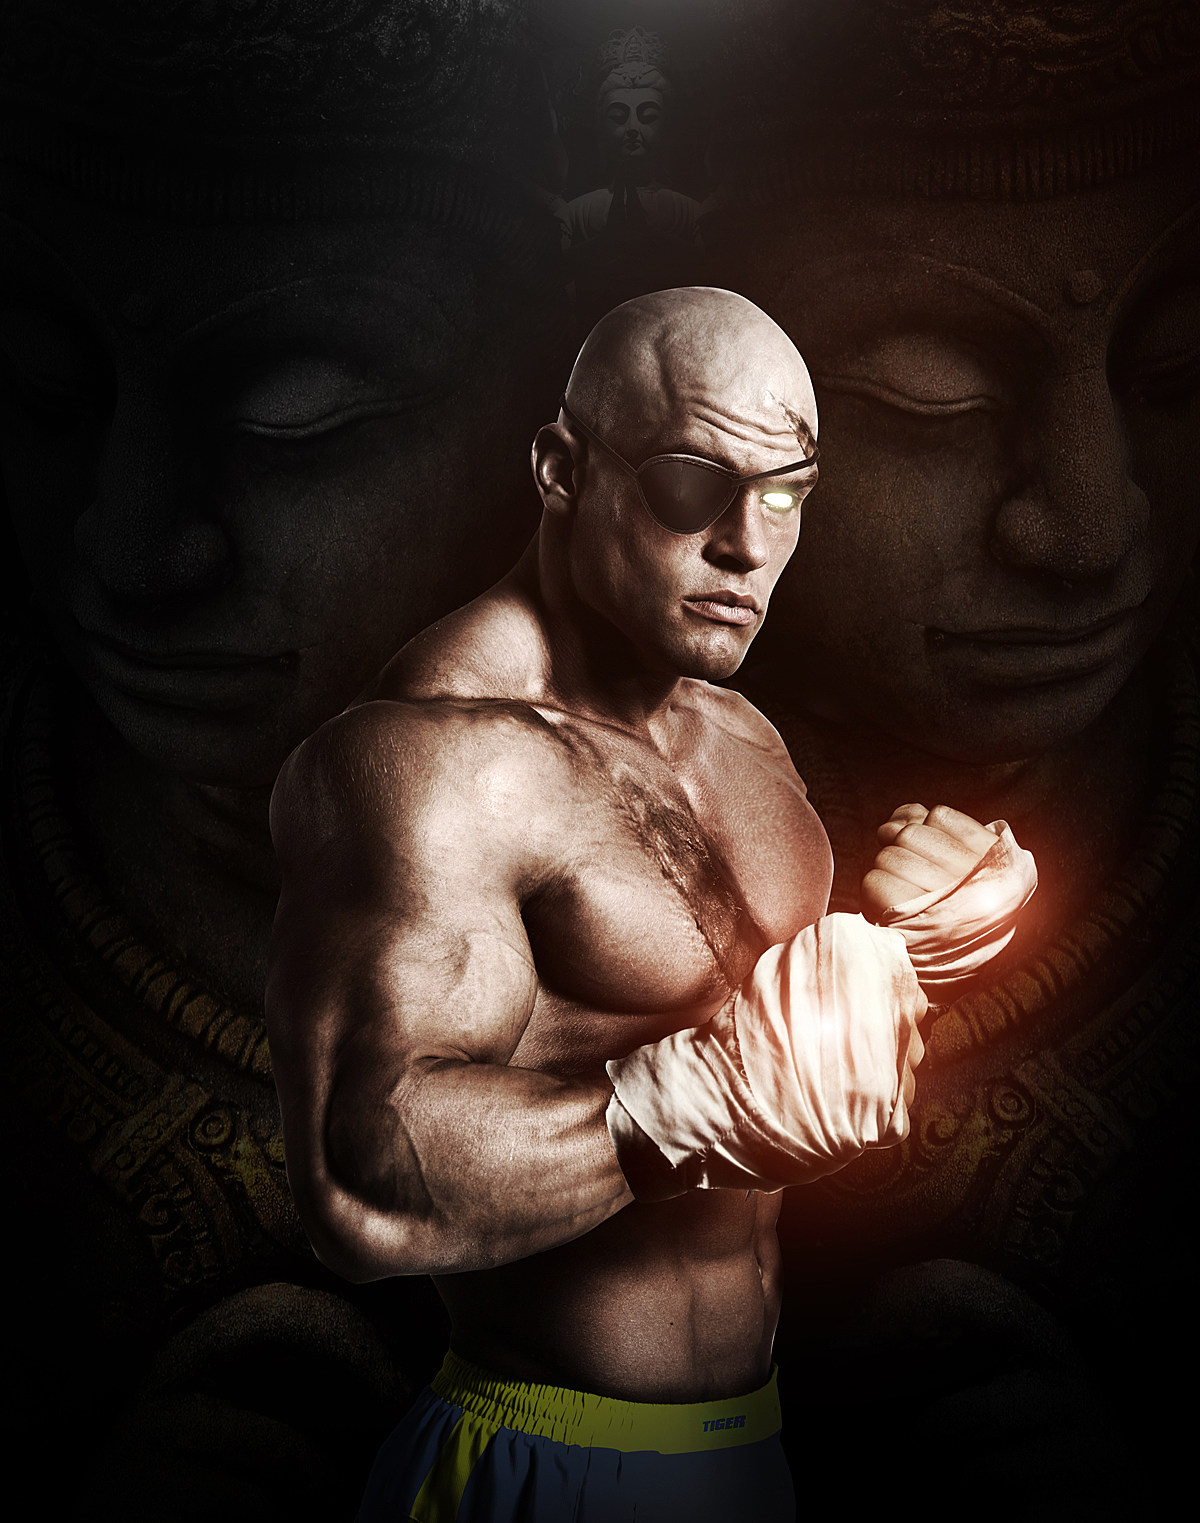 Hyper Real Super Street Fighter IV Art Featuring Sagat src=